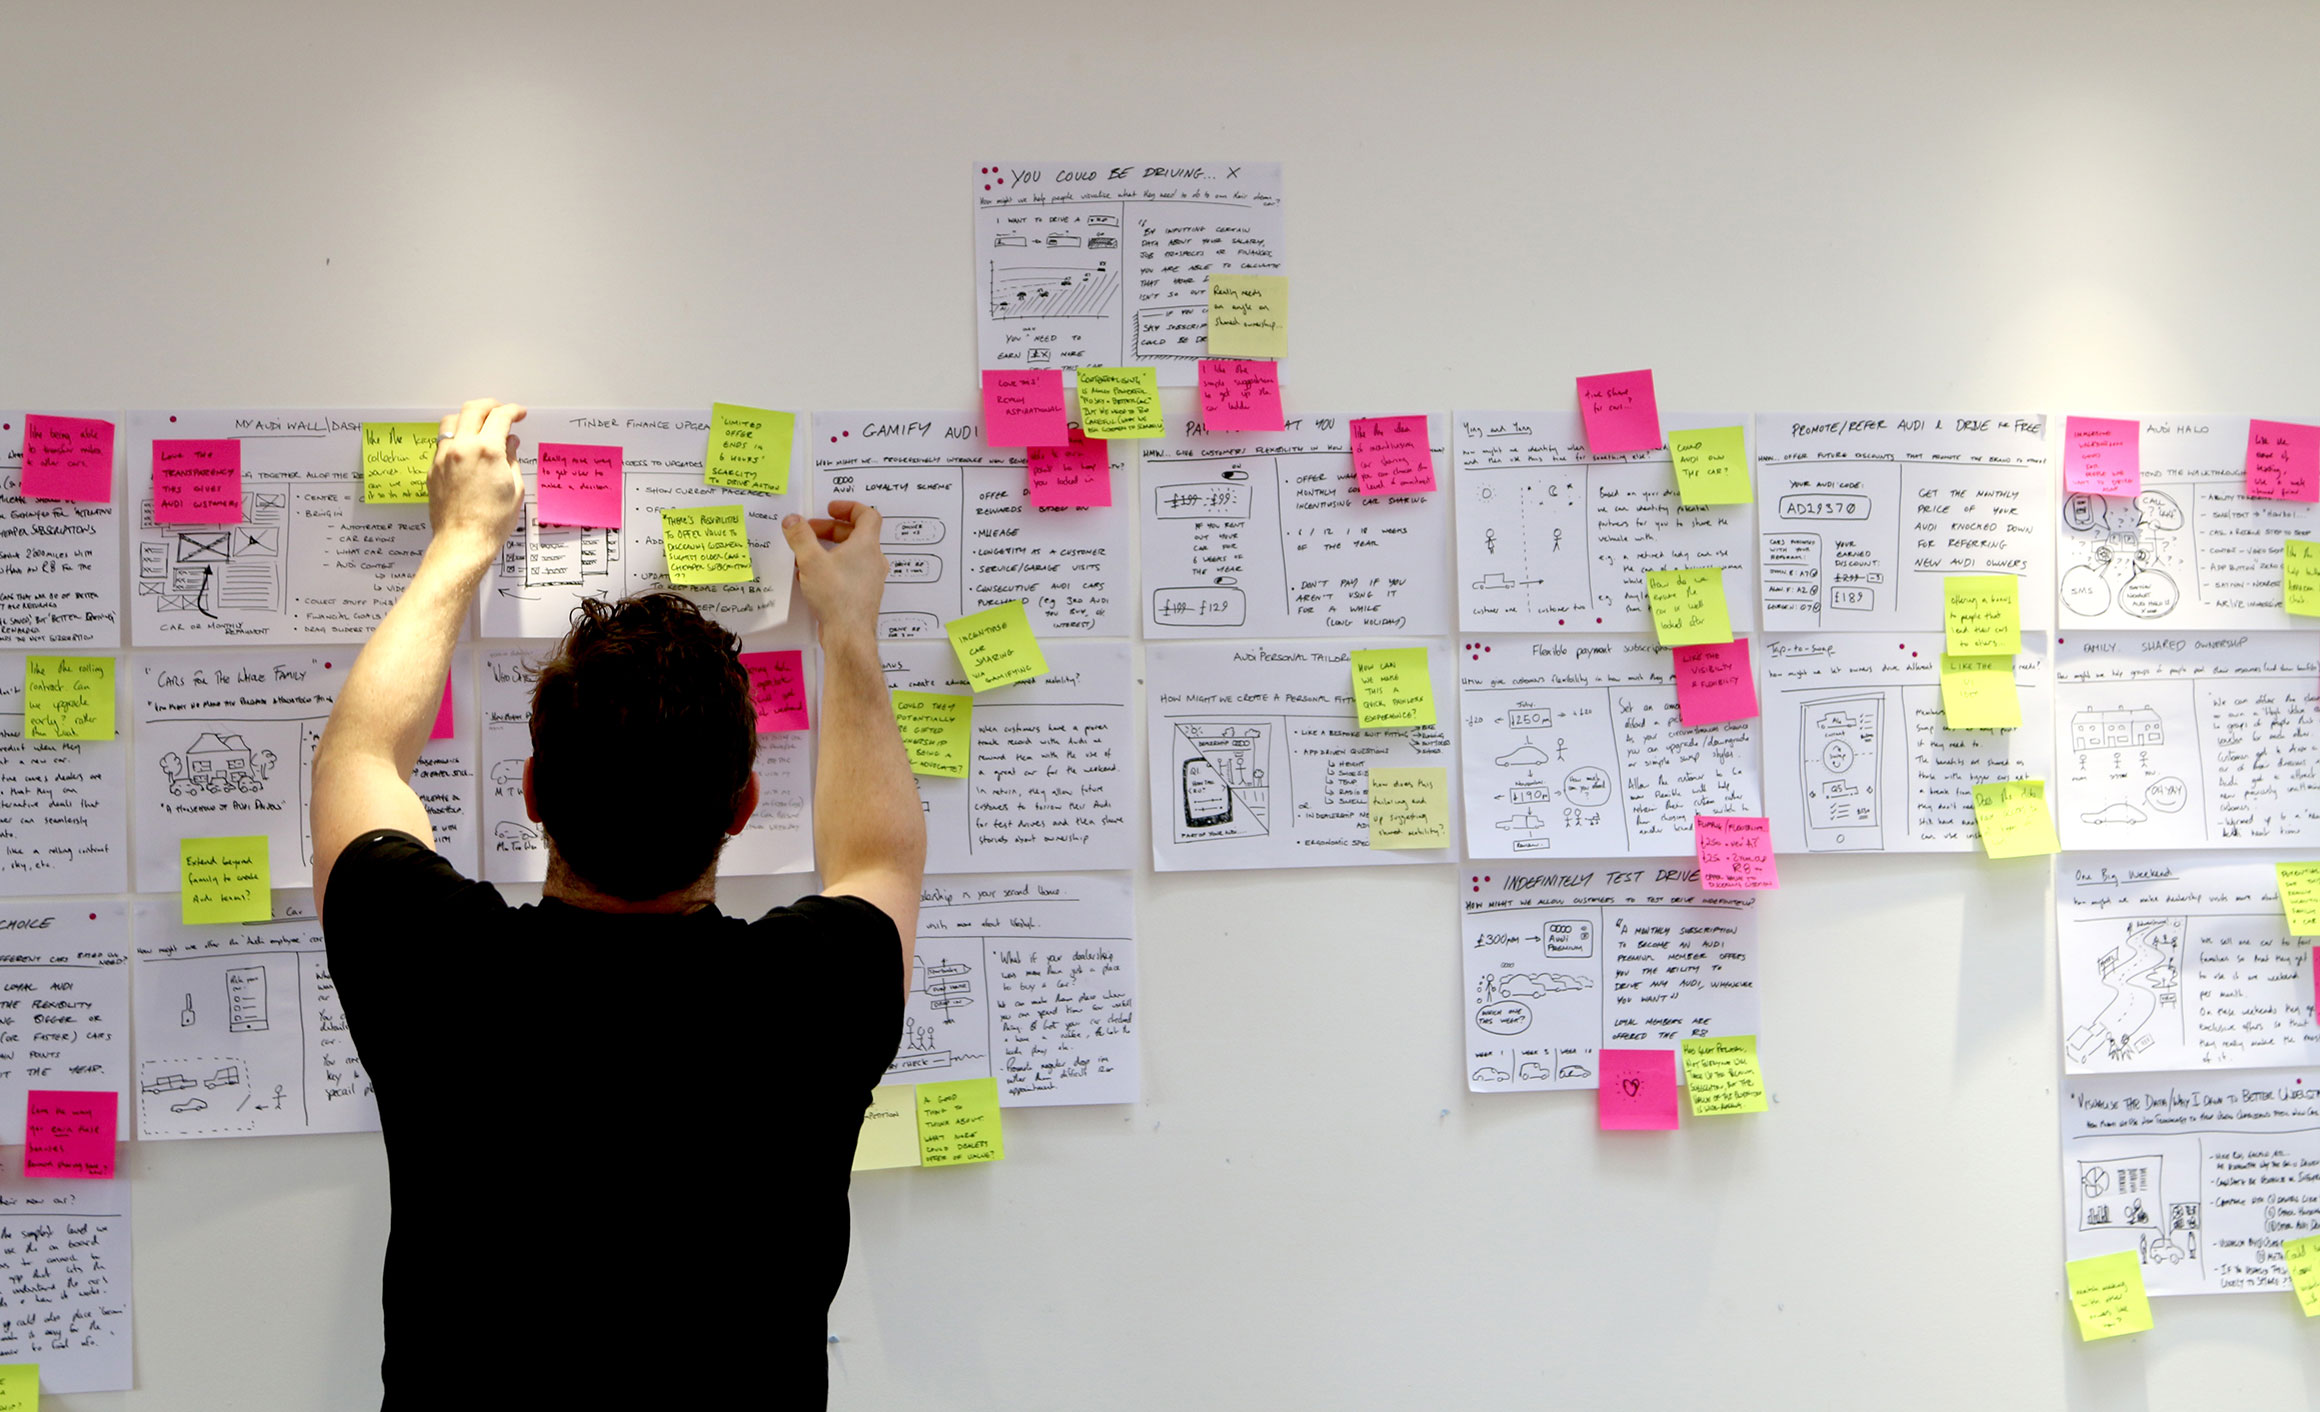 How to measure digital transformation: Rightshifting to product thinking